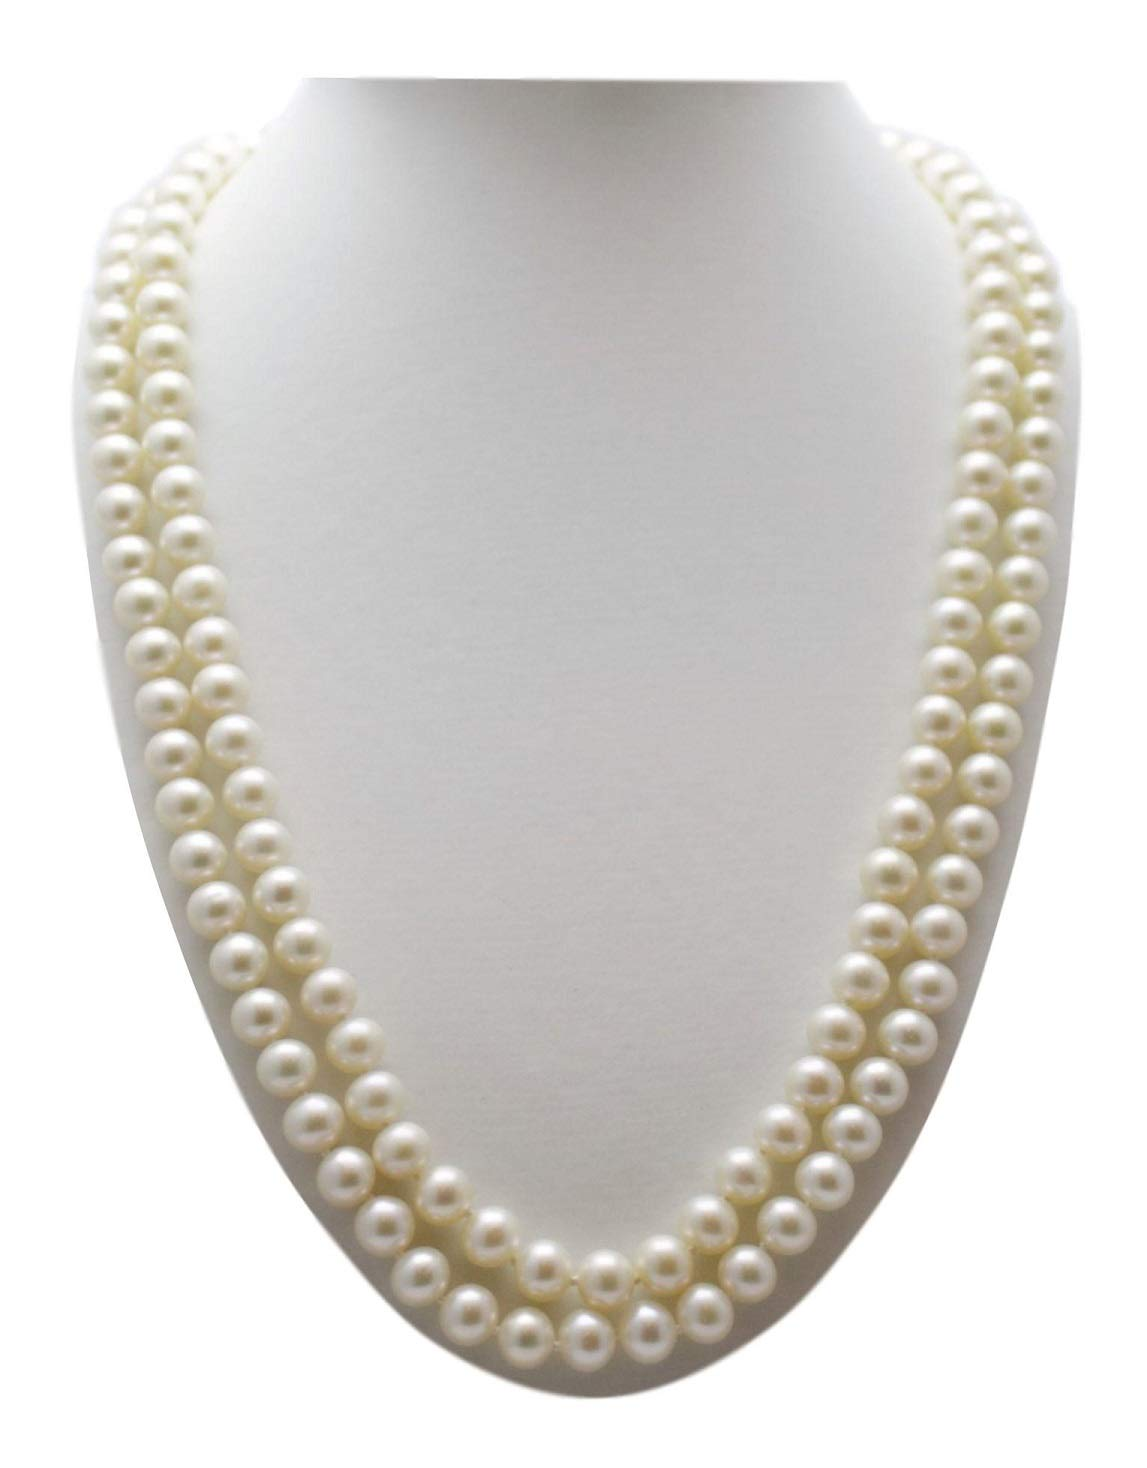 Shoppe23 Pearl Necklace Set Elegant Two Strand 6mm Bridesmaid Jewelry Boxed (Ivory) #188+